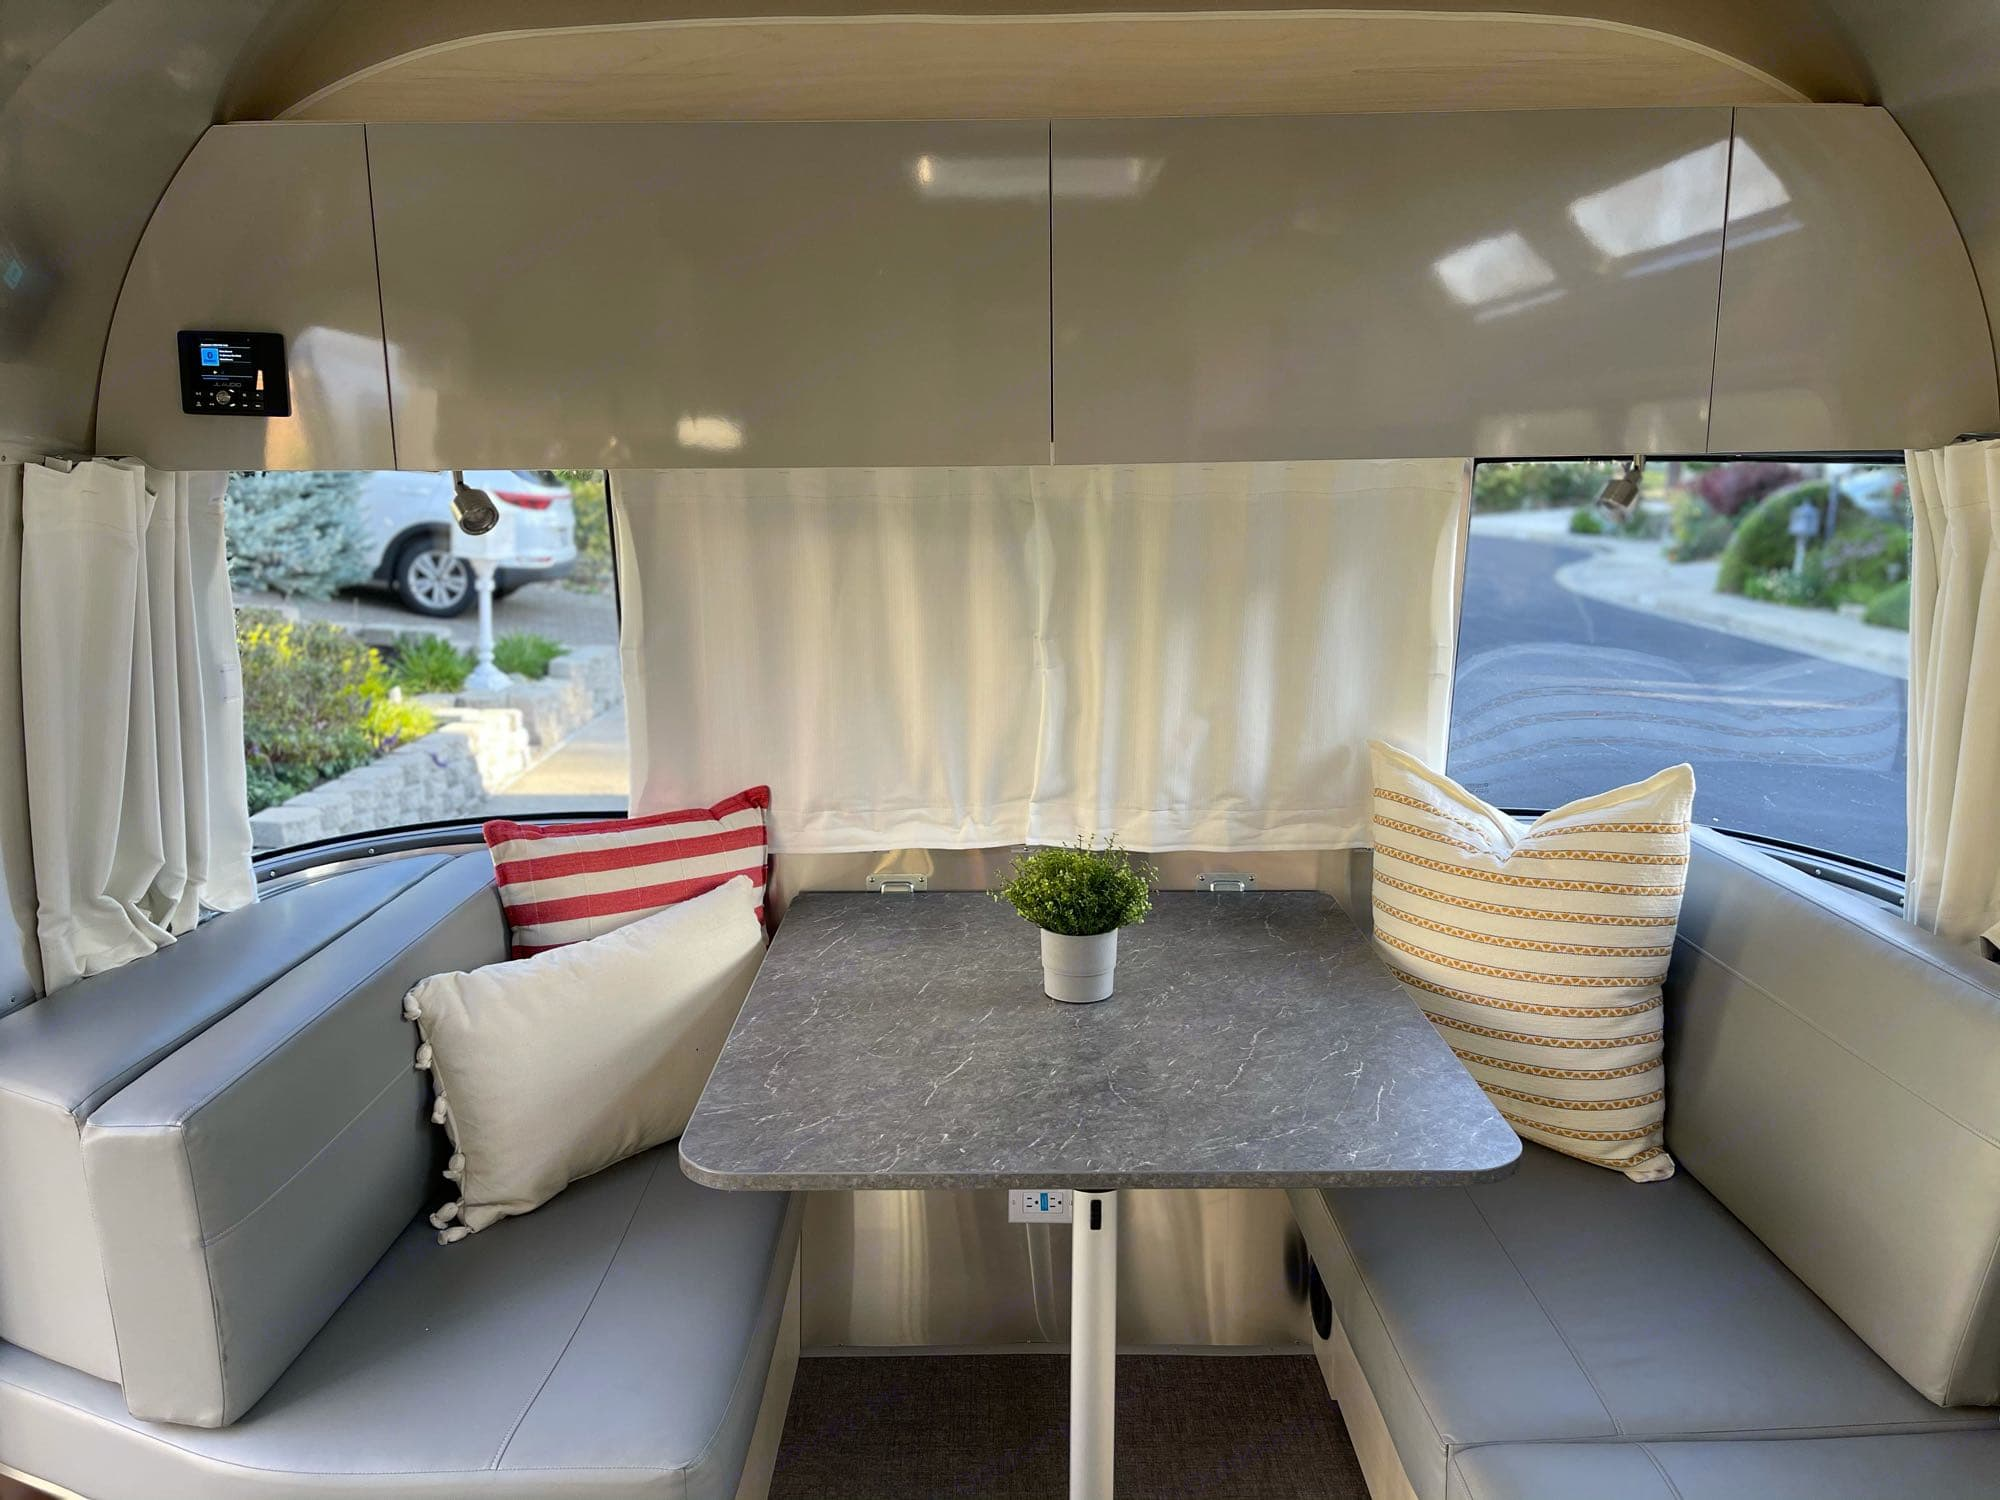 JL Audio System Array of games to play Dinning is a breeze. Airstream Flying Cloud 2021